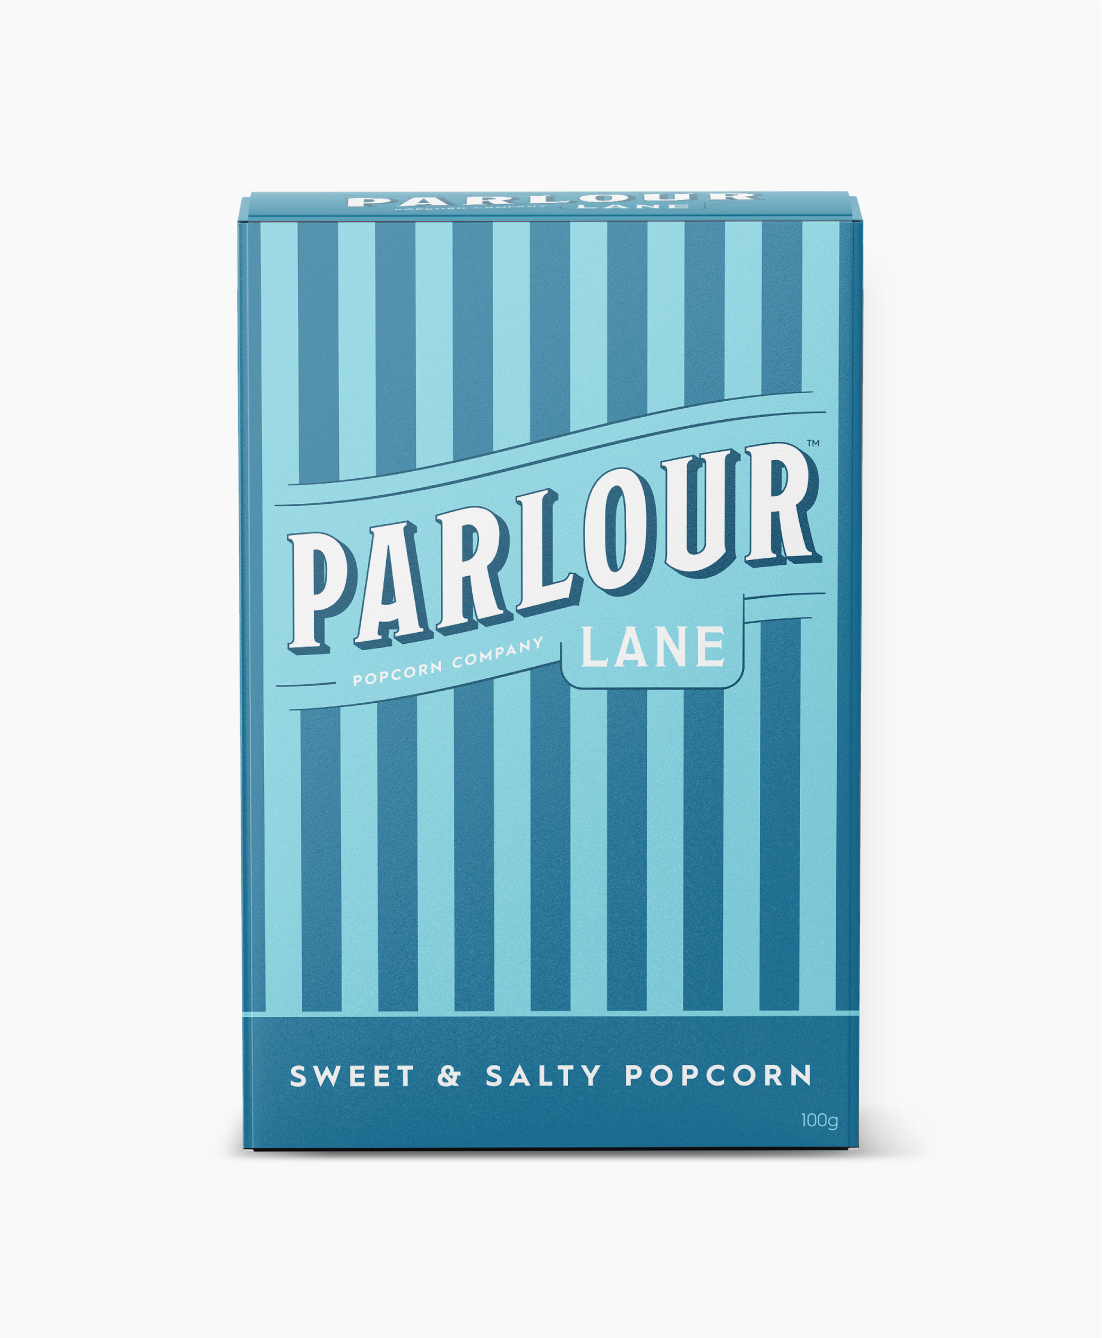 Parlour Lane Popcorn Package Design Sweet and Salty